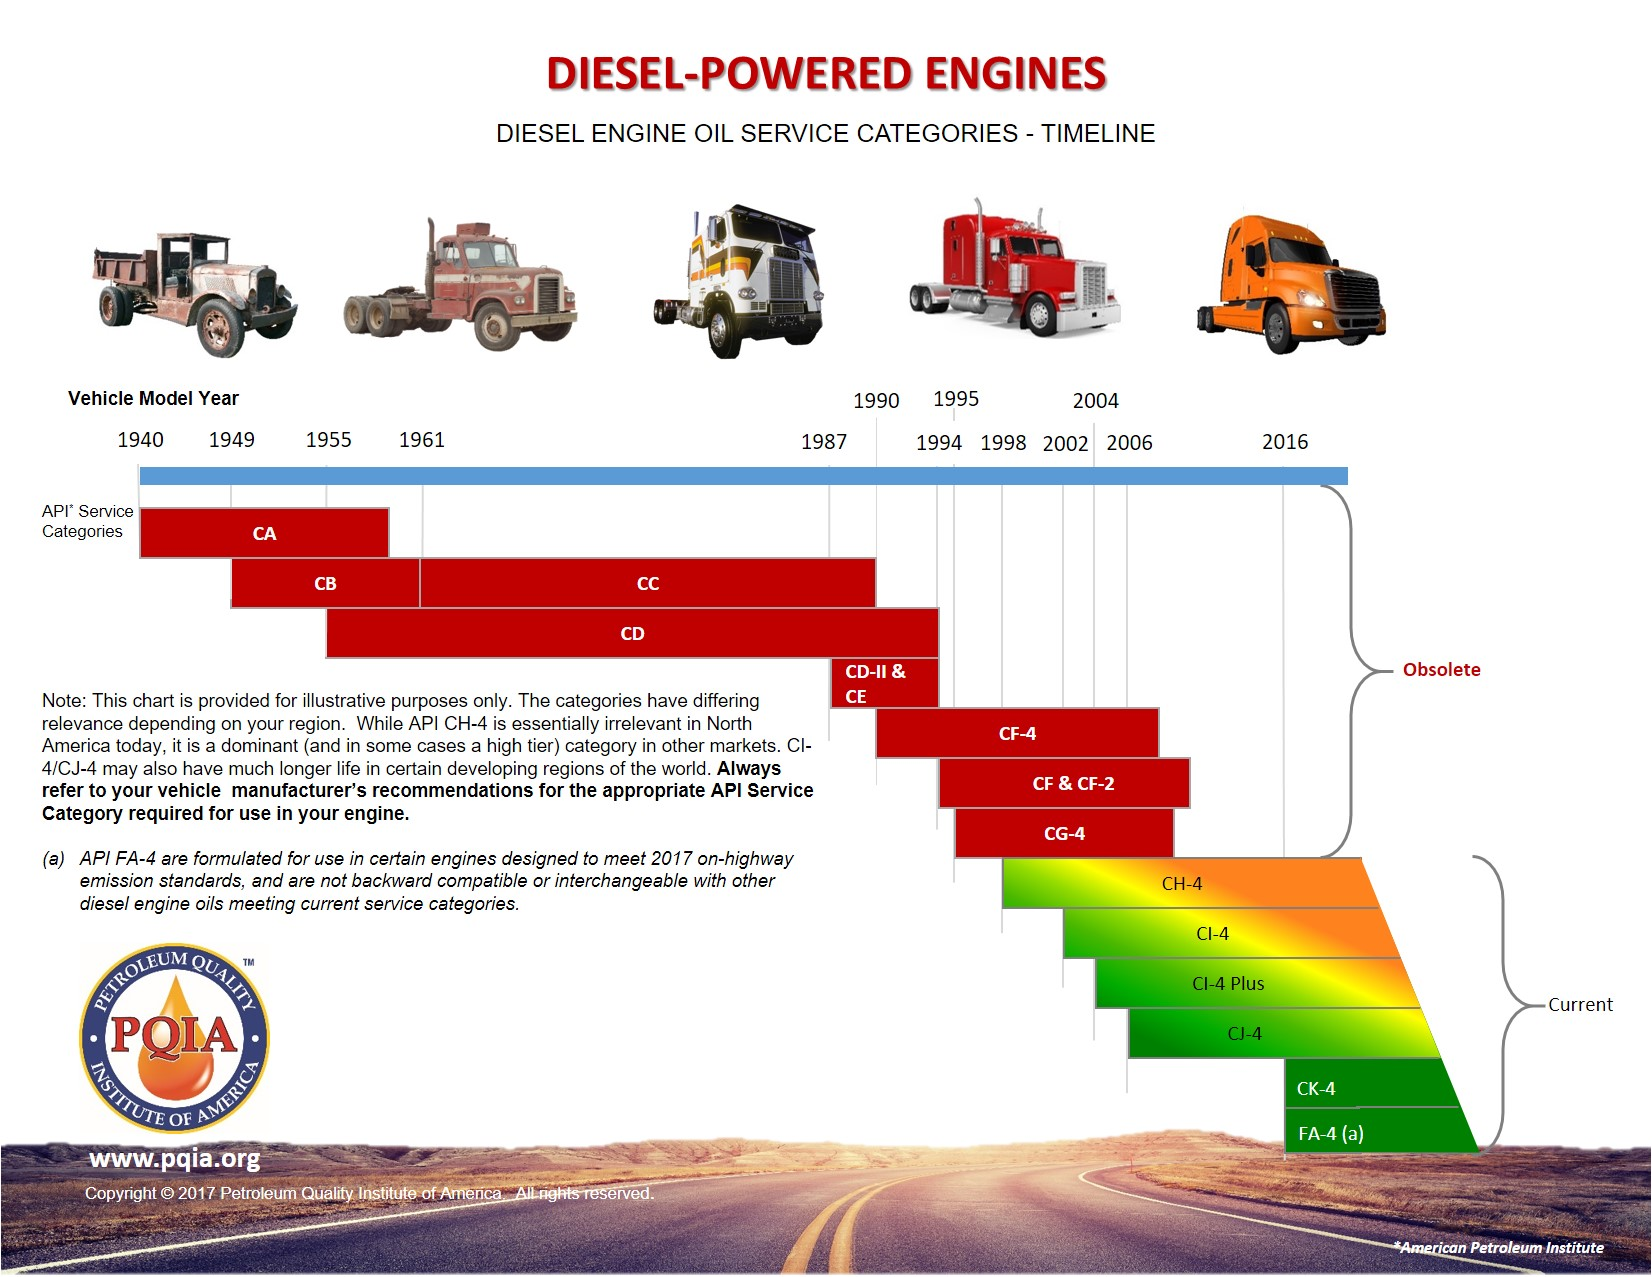 API high powere diesel Motor oil timeline